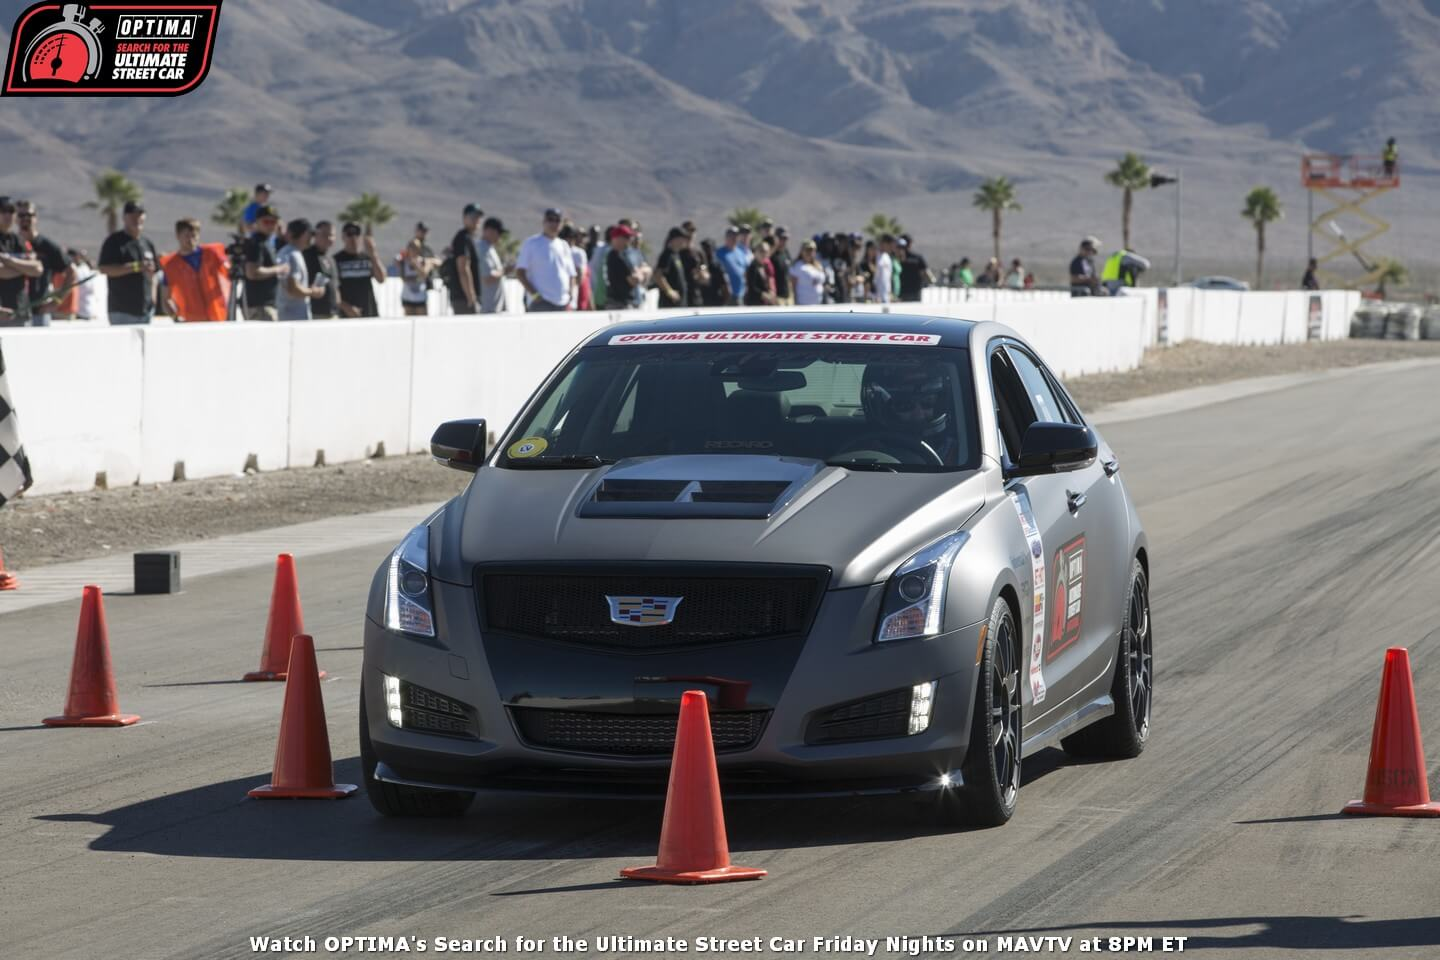 Ryan-Graham-2014-Cadillac-ATS-Wilwood-Speed-Stop-Challenge-2014-OPTIMA-Ultimate-Street-Car-Invitational_111